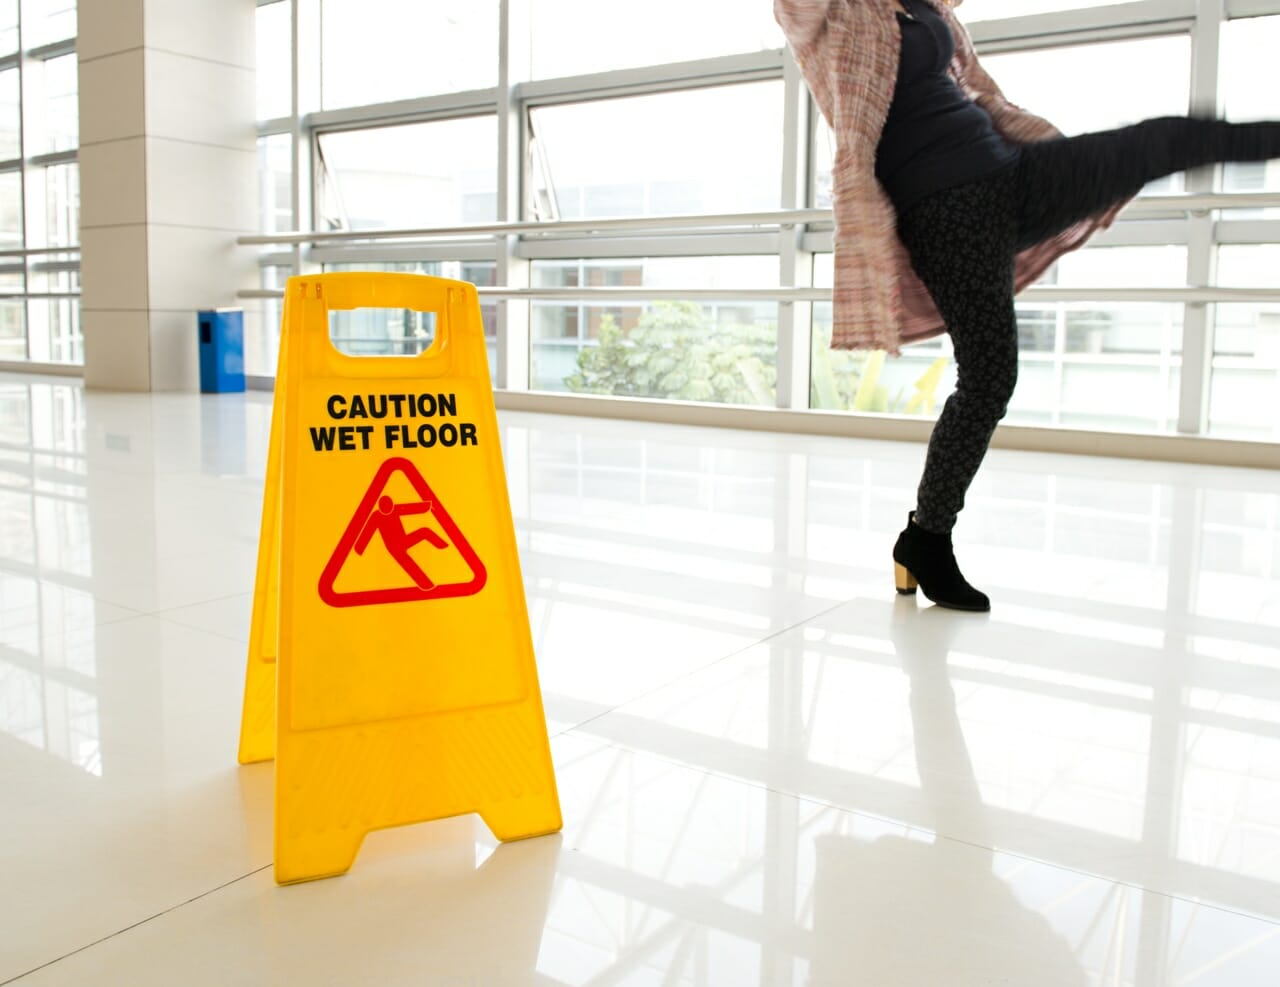 Image of a slippery floor